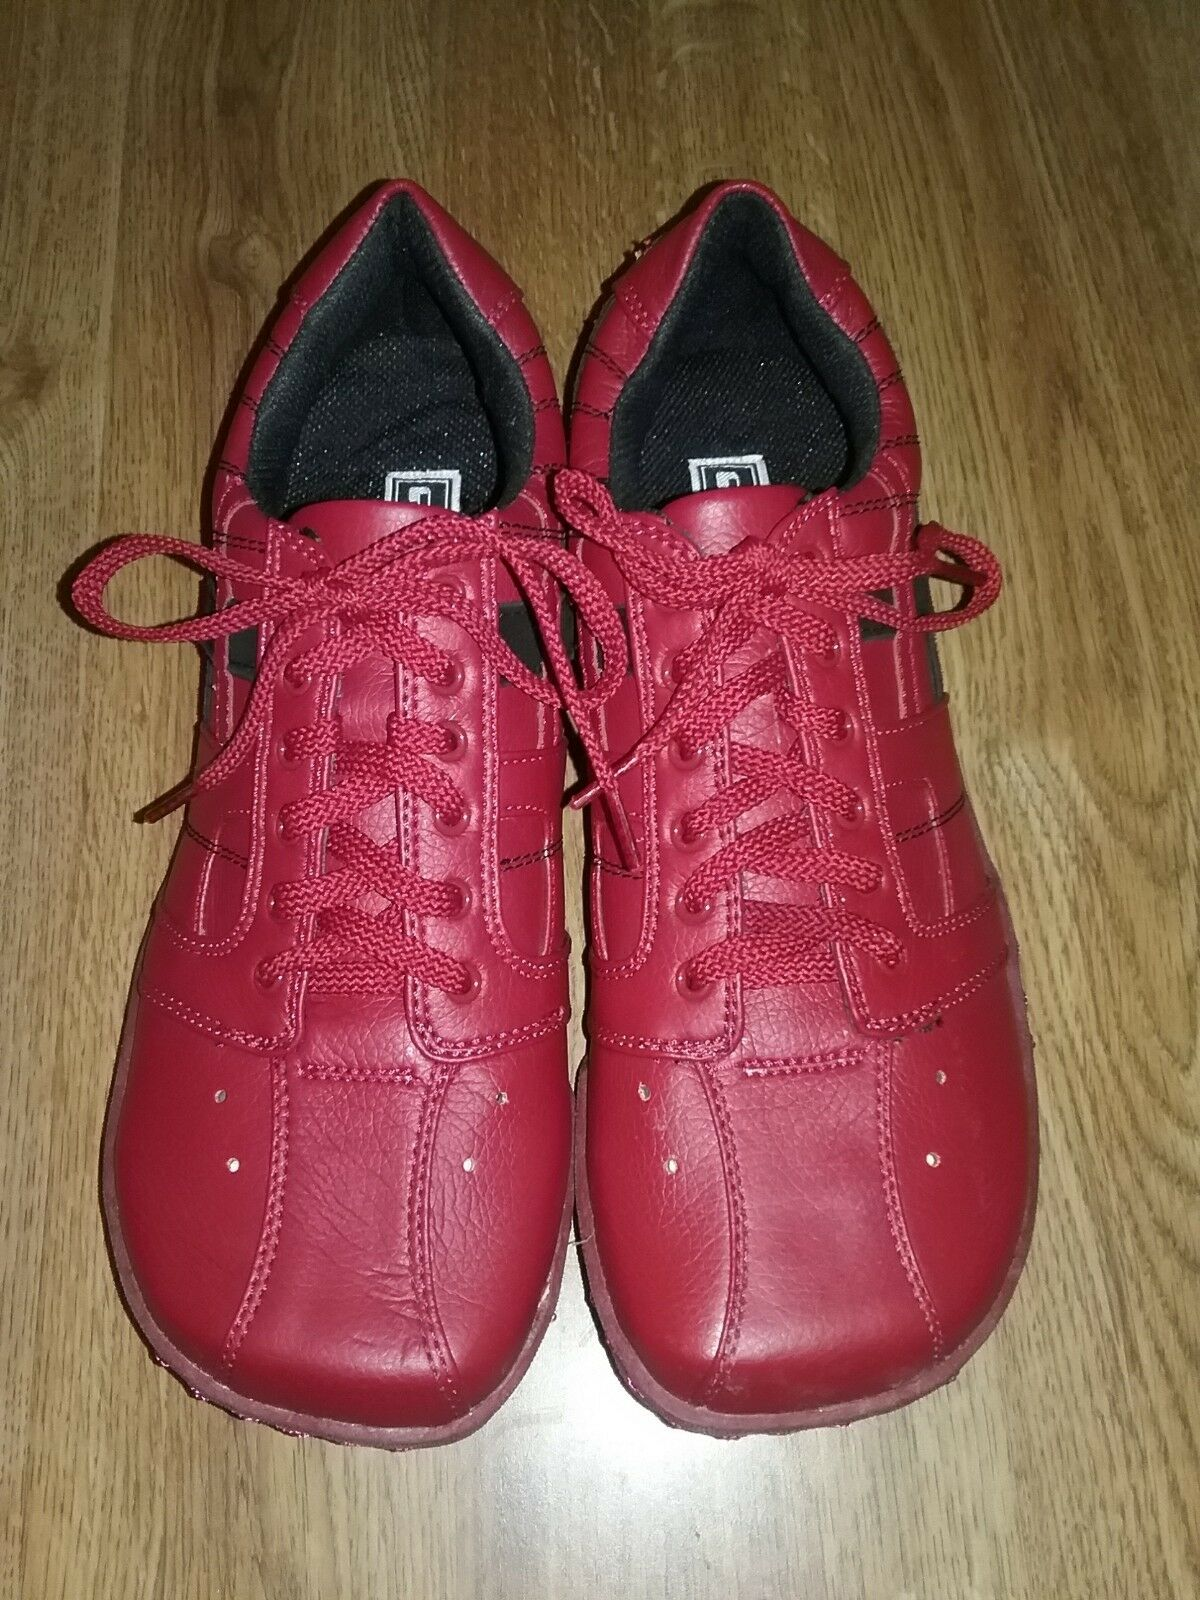 Fuel Women's Fashion shoes Sneakers Size 10 color Red New With Box NWB Cute